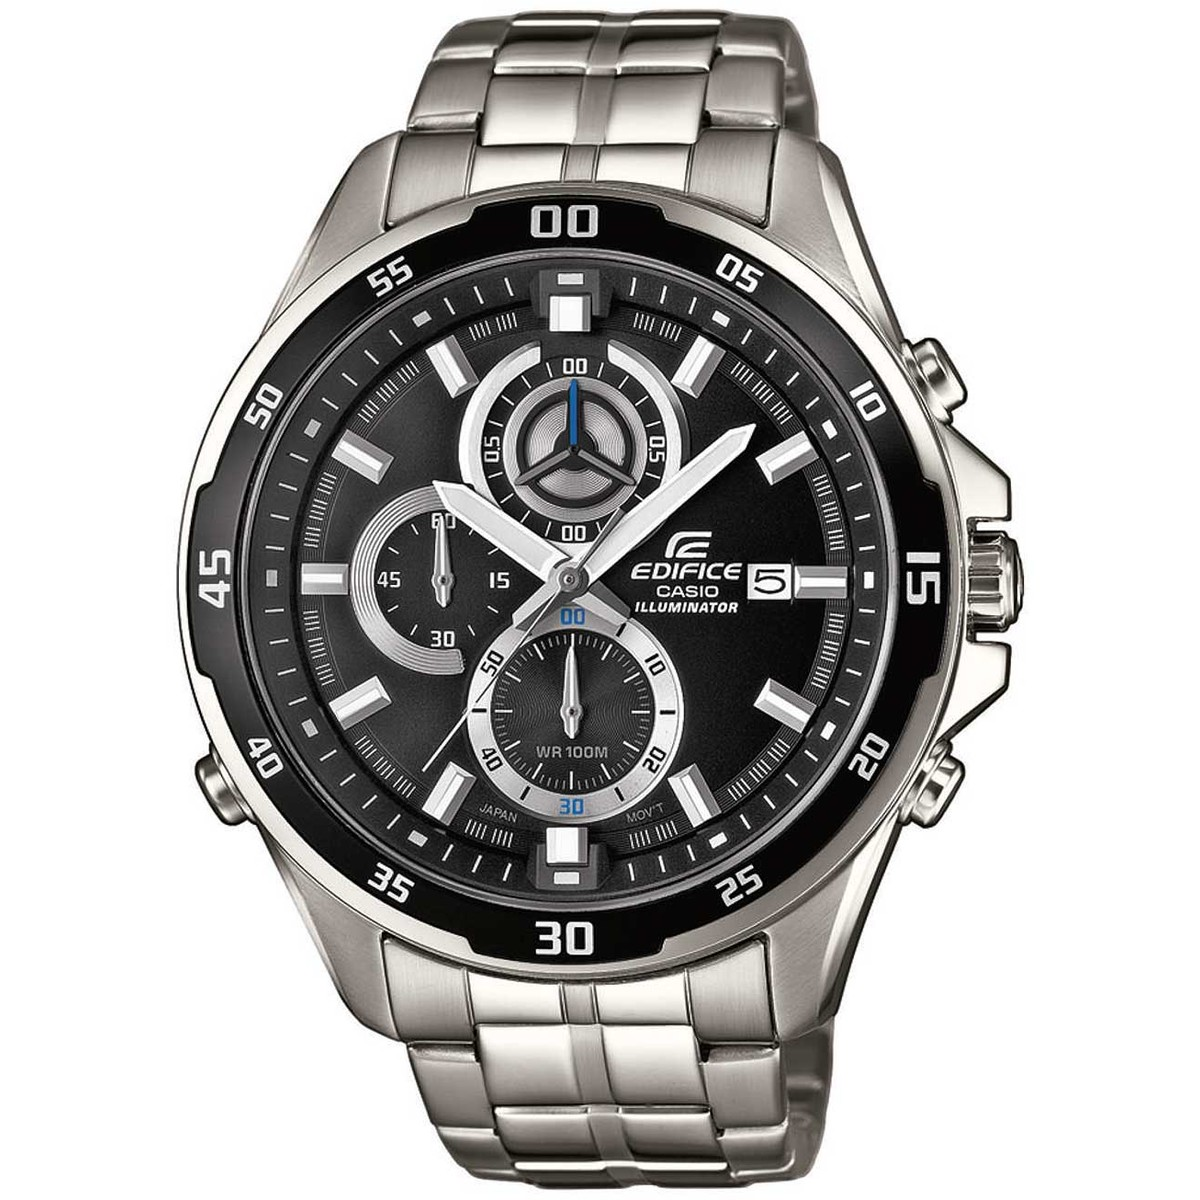 Ceas barbatesc Casio Edifice EFR-547D-1AVUEF original de mana